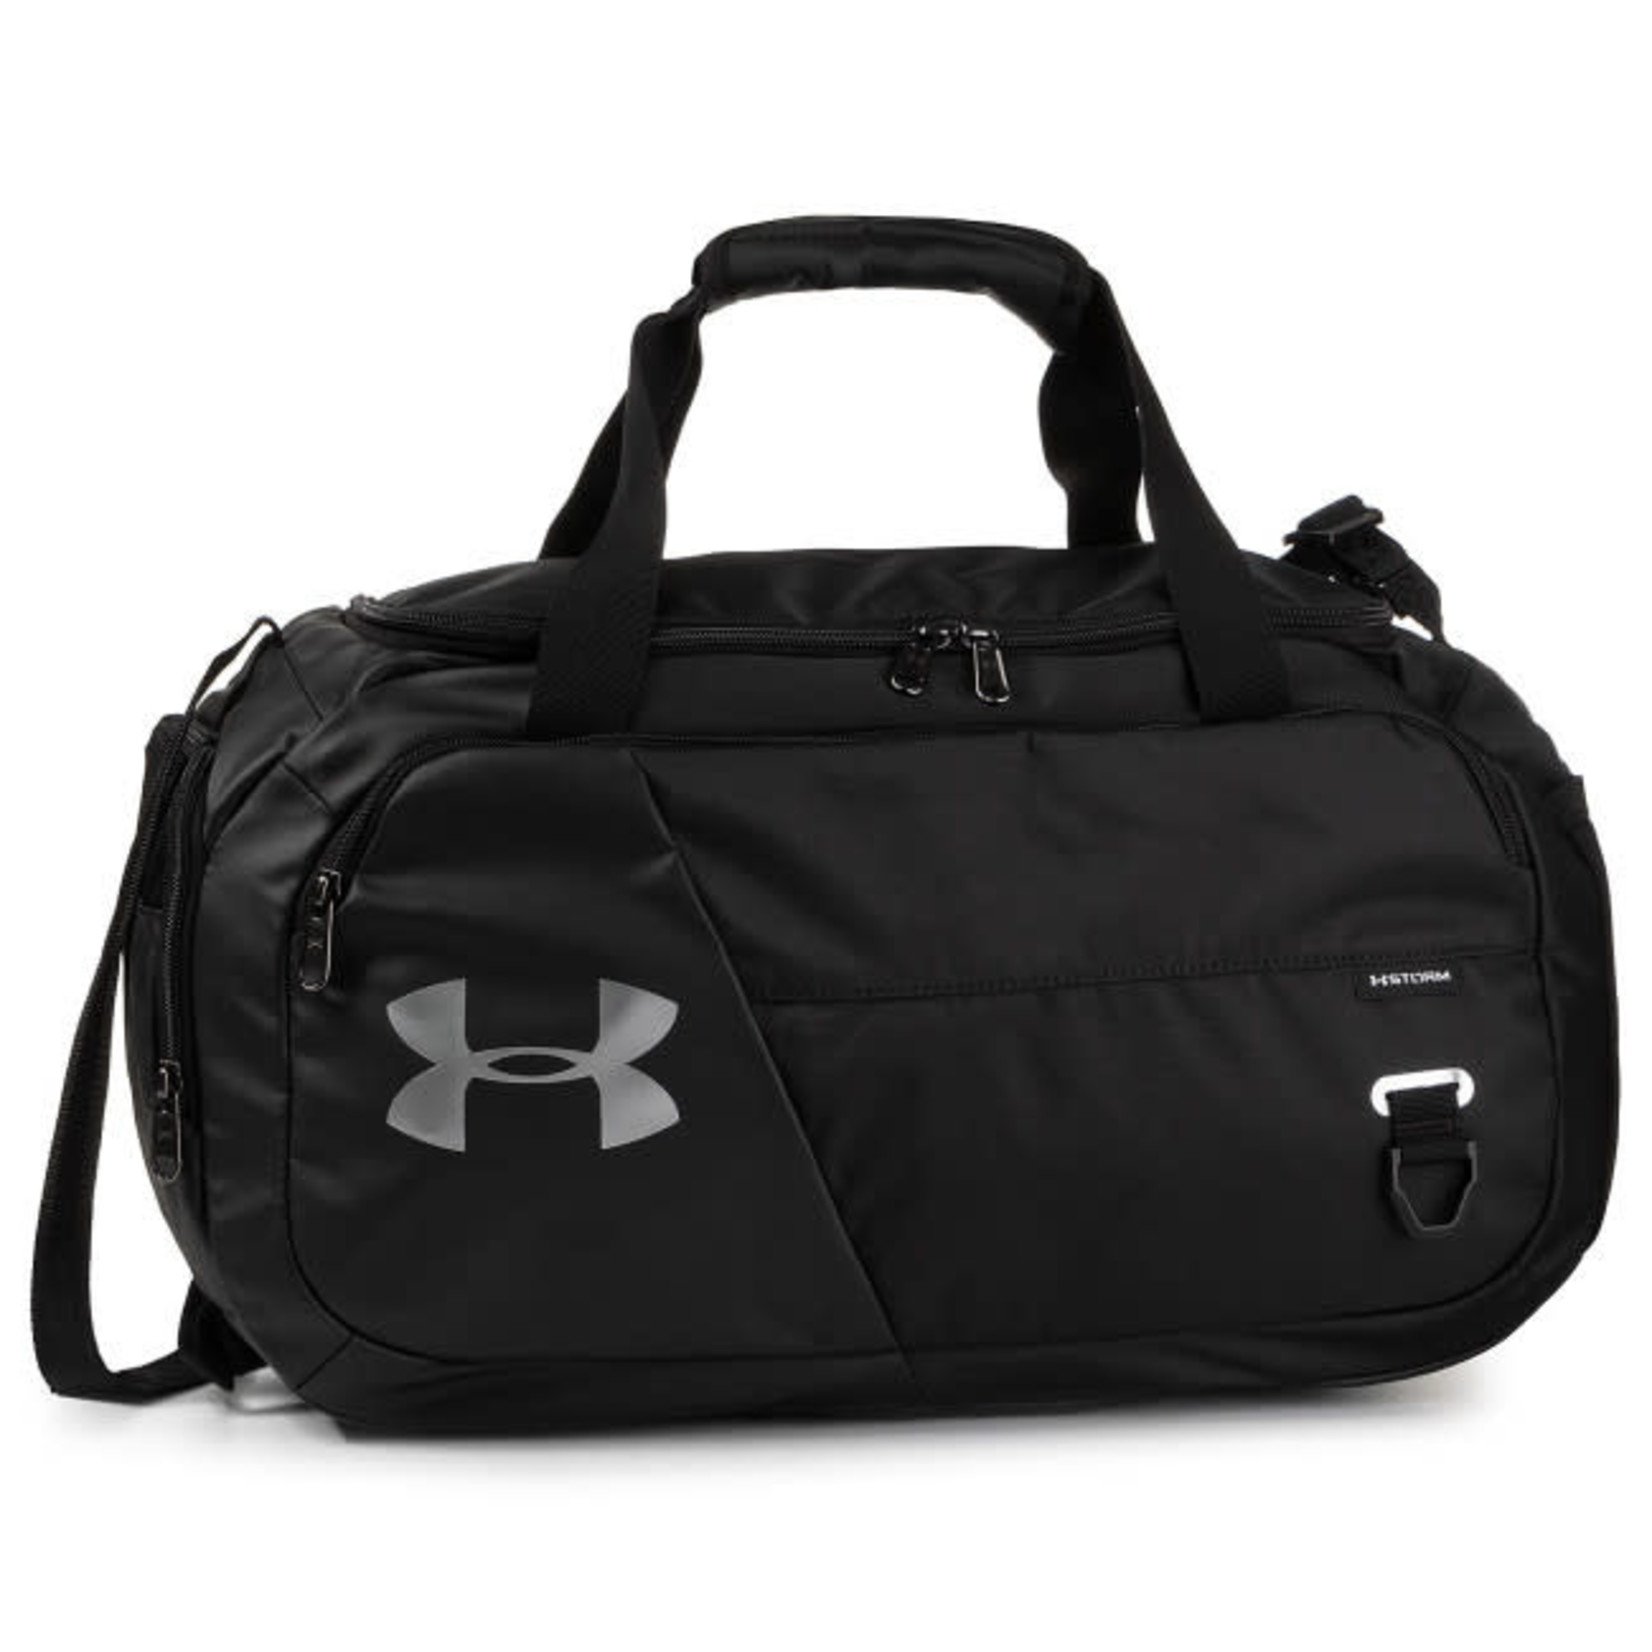 Under Armour Under Armour Duffle Bag, Undeniable 4.0, XS